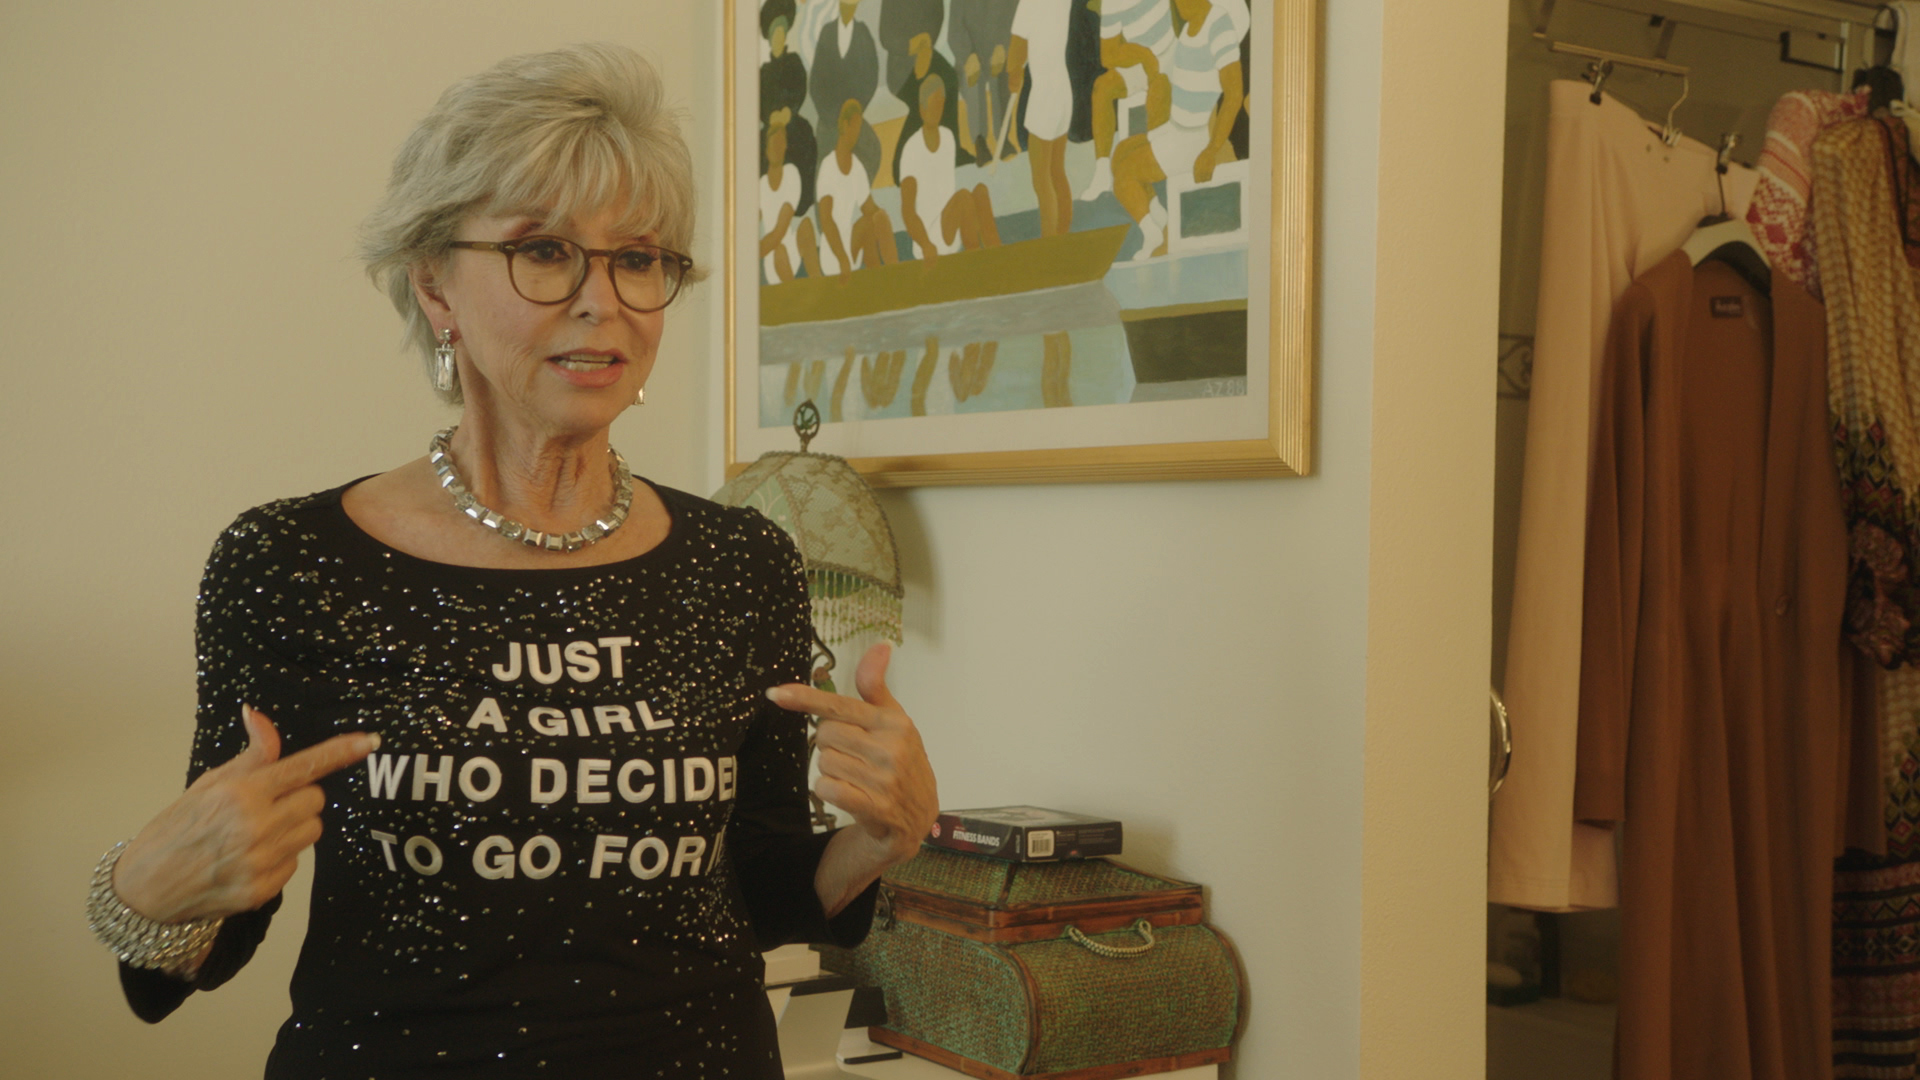 A woman with short white hair, eyeglasses points to her t-shirt. She stands in a room in a house with a painting on wall.